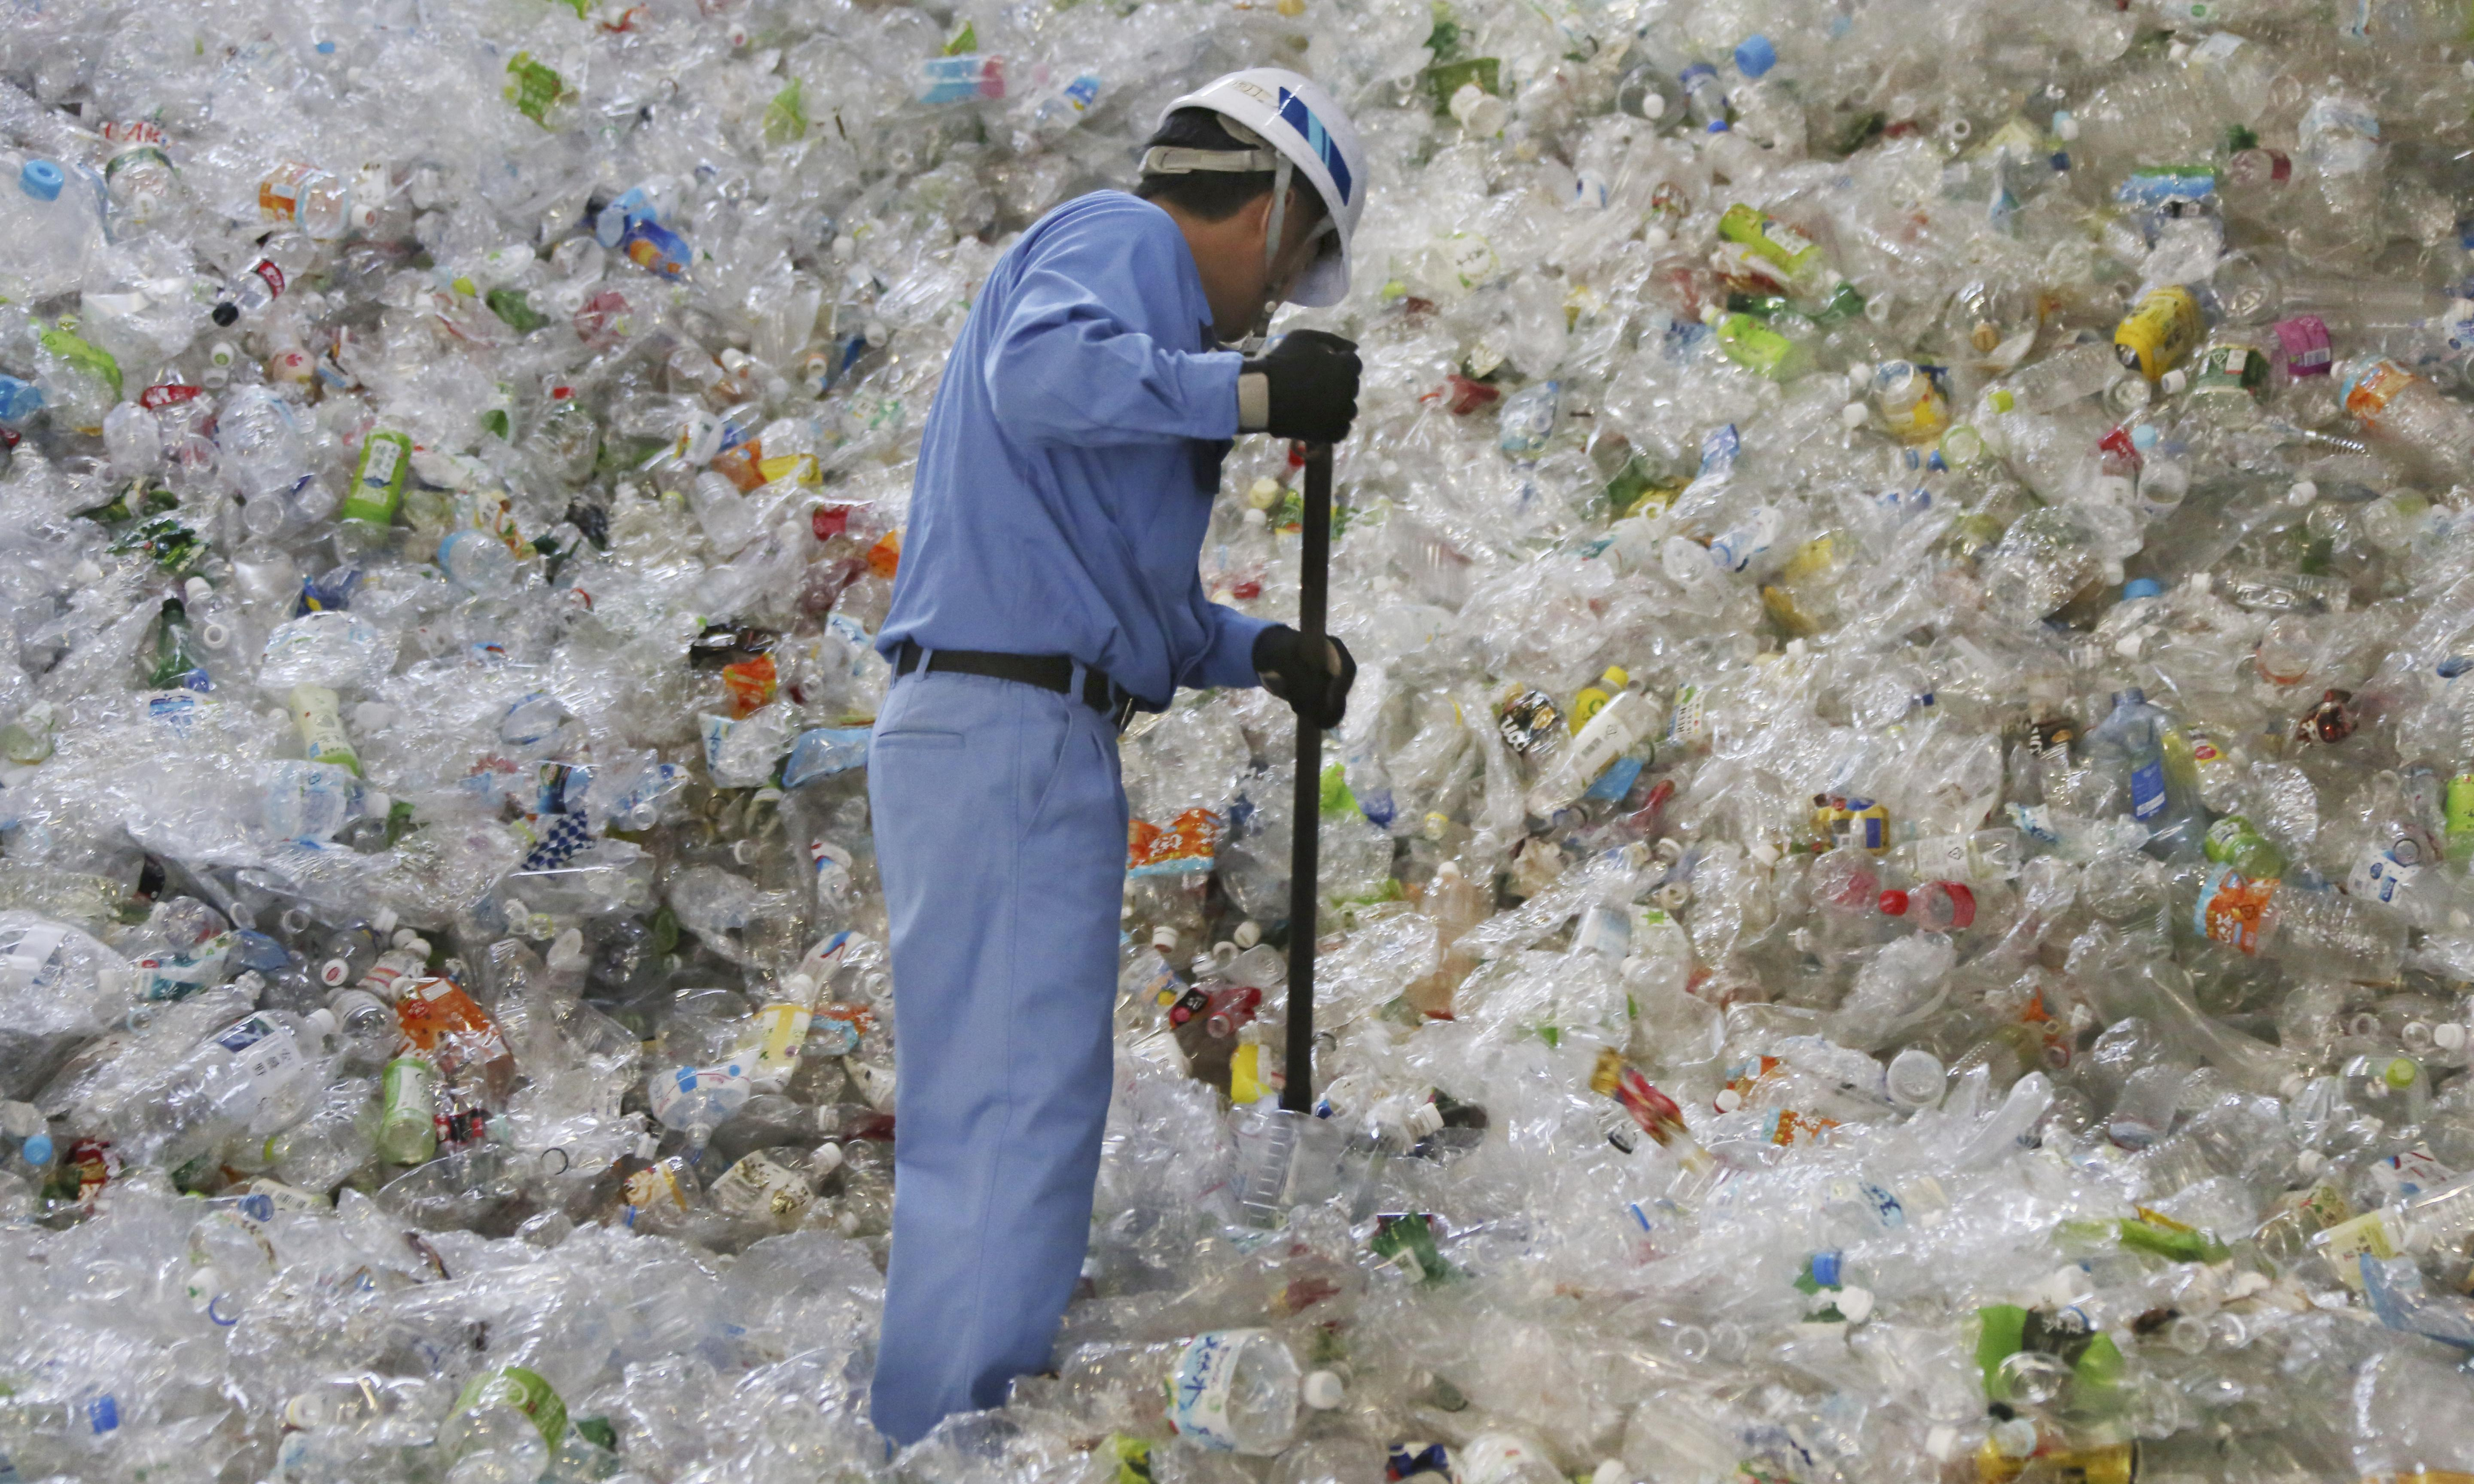 Japan's plastic problem: Tokyo spearheads push at G20 to tackle waste